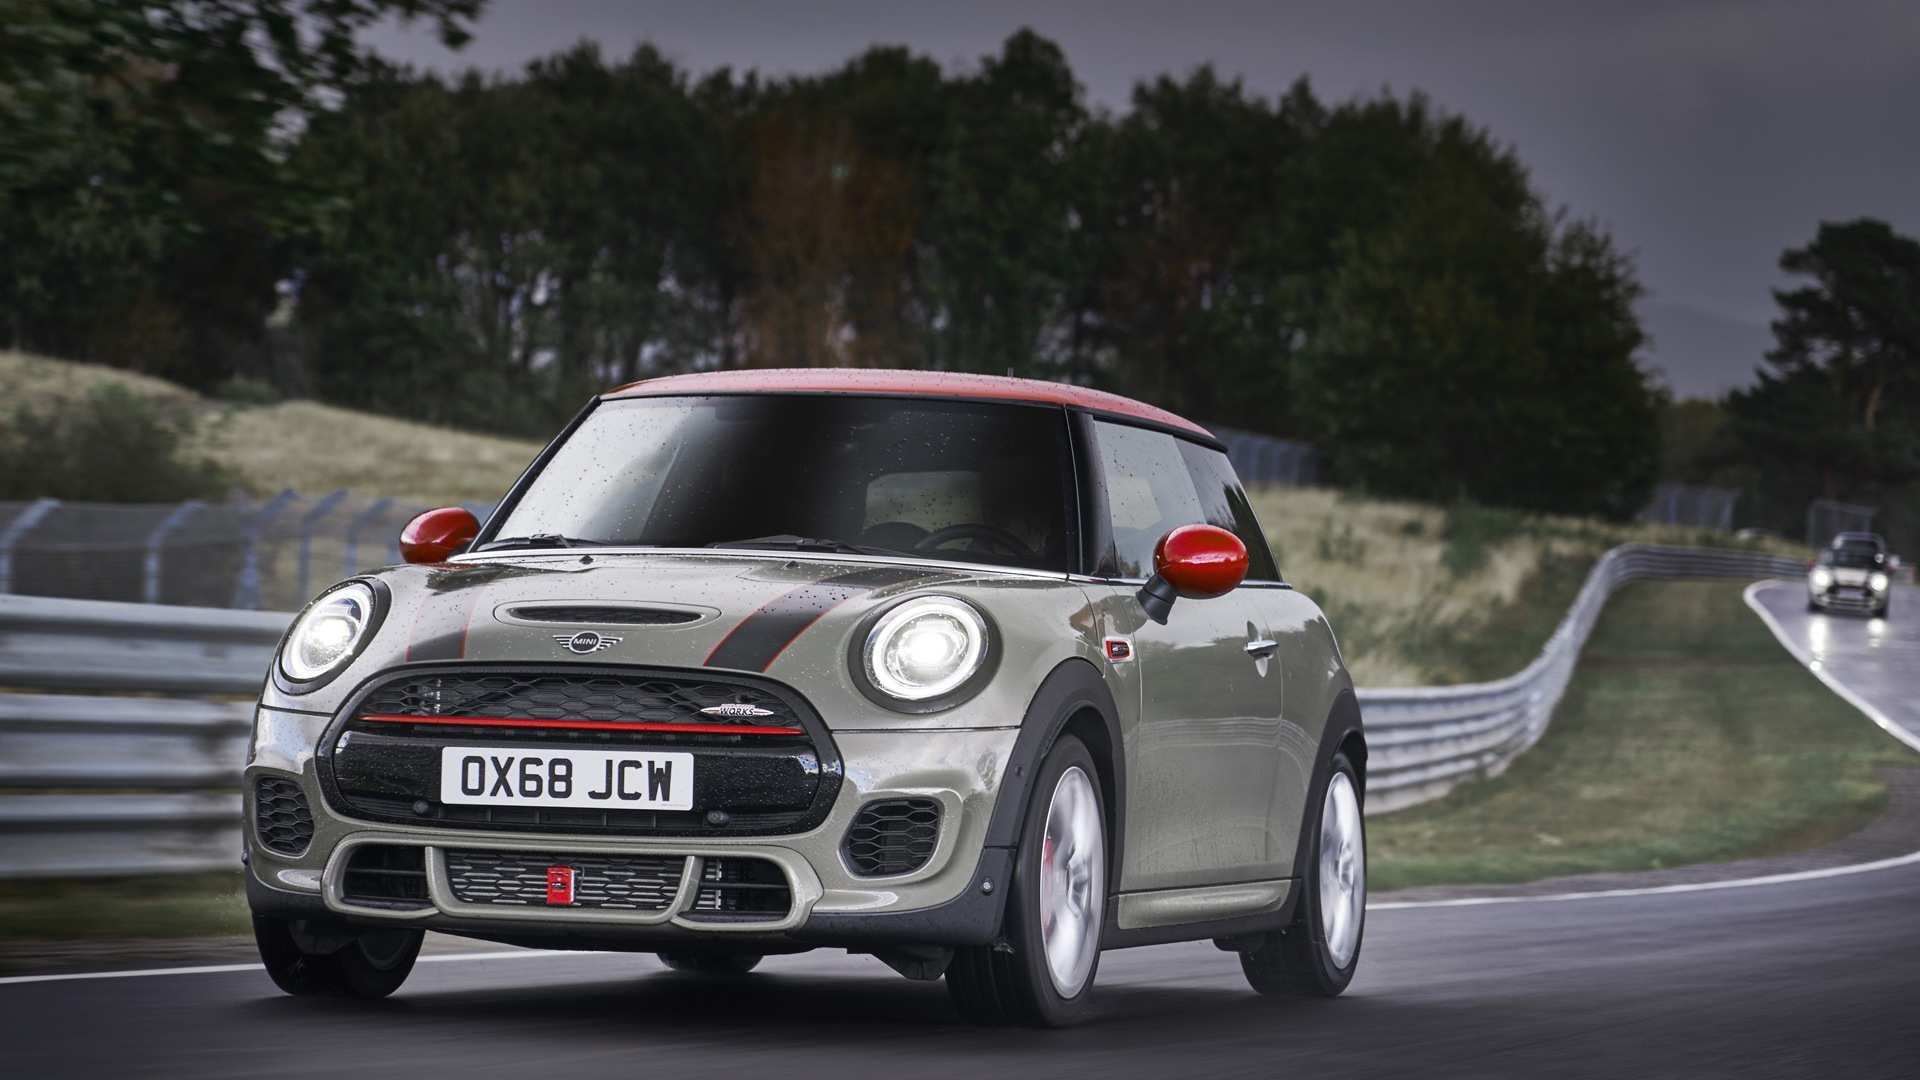 90 All New 2019 Mini John Cooper Works Price Design And Review